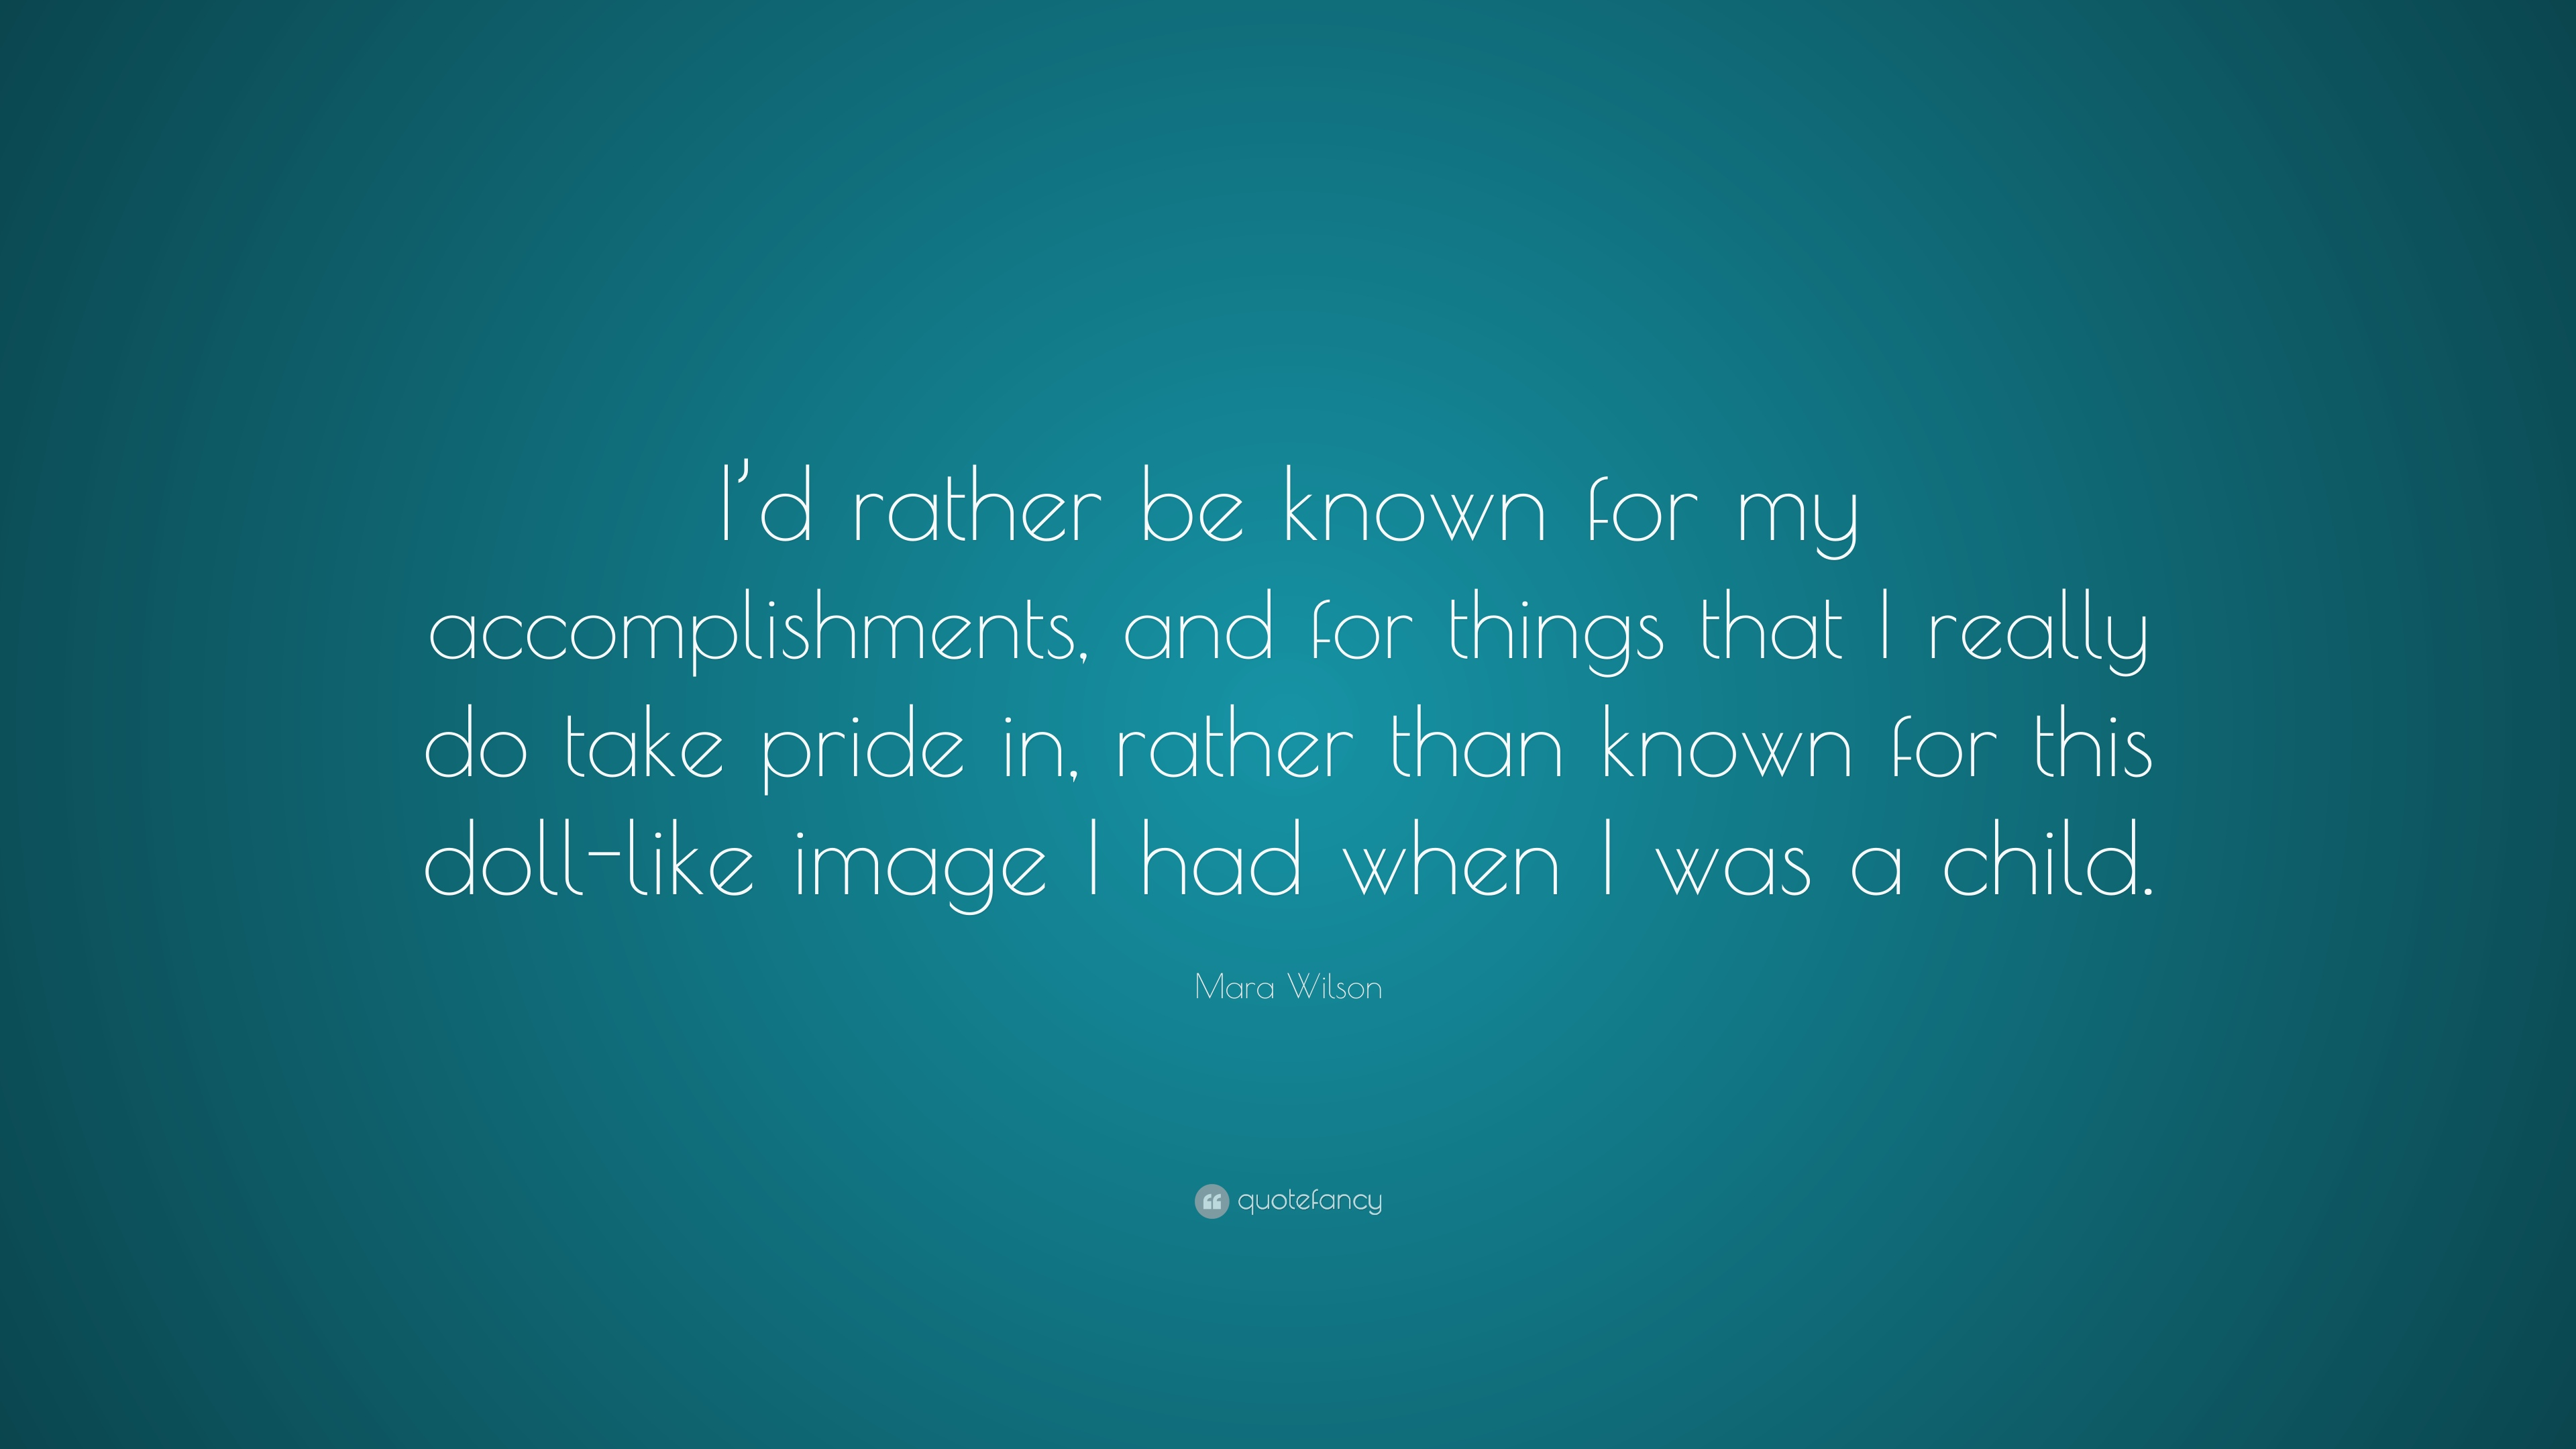 mara wilson quote i d rather be known for my accomplishments mara wilson quote i d rather be known for my accomplishments and